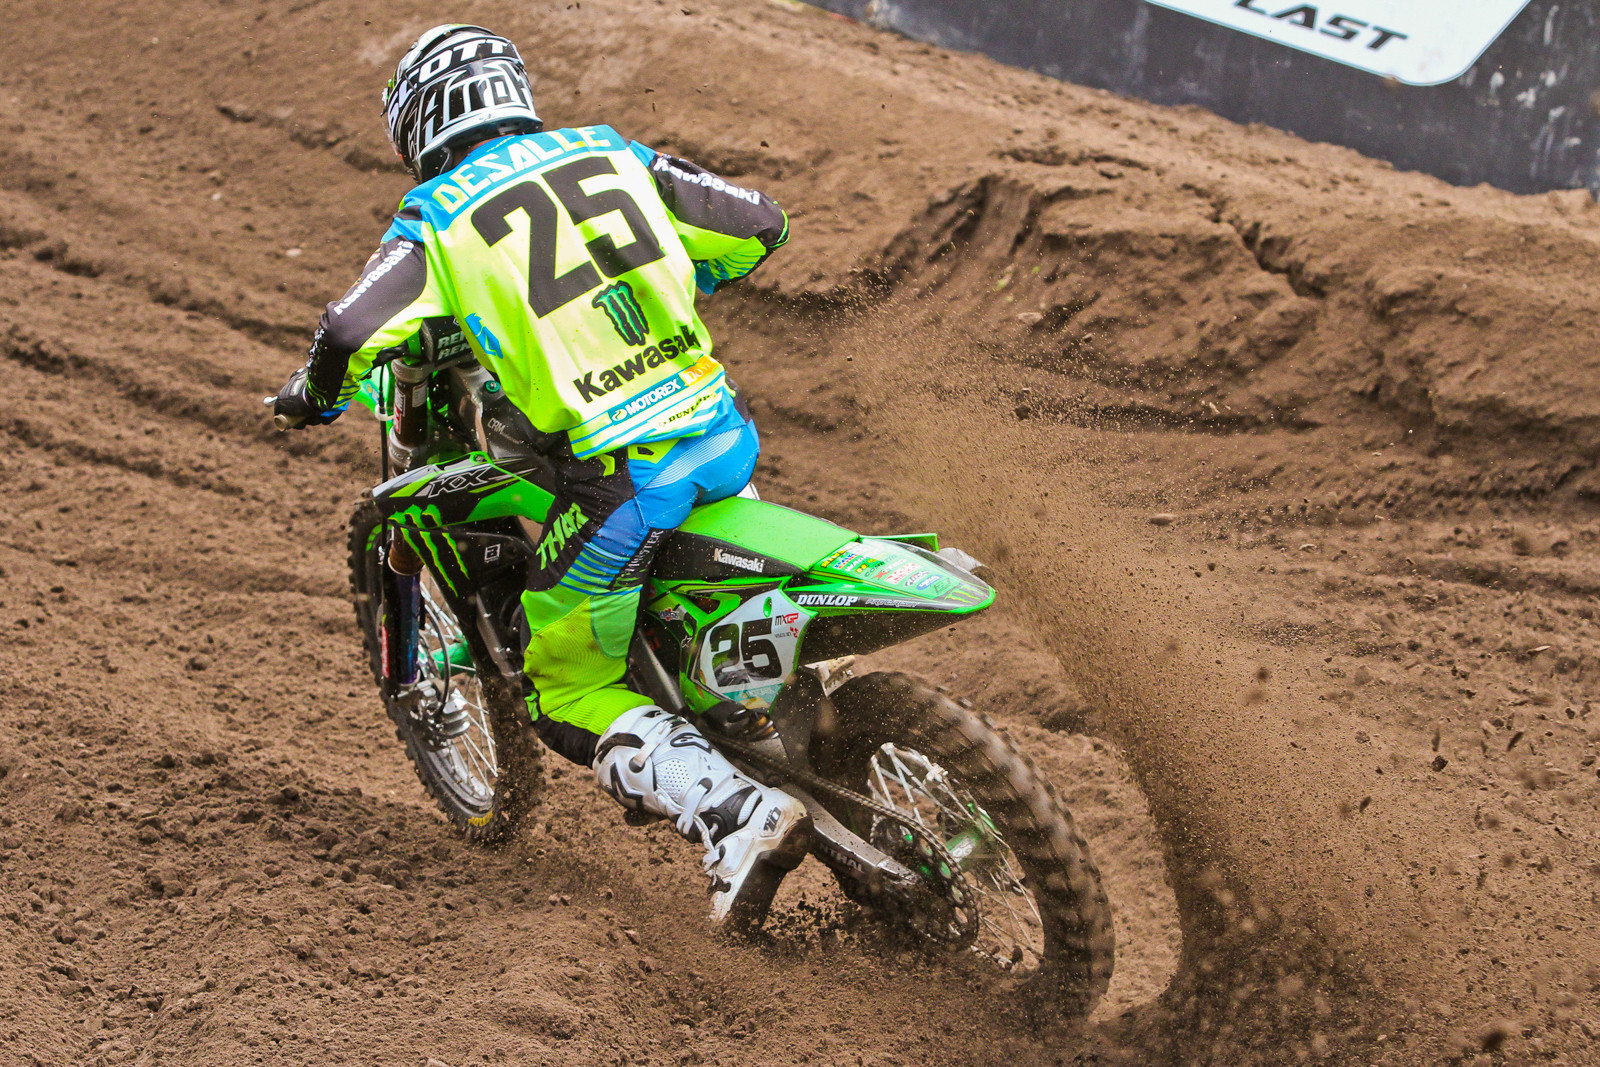 Clement Desalle - Photo Blast: 2017 MXGP of Valkenswaard - Motocross Pictures - Vital MX